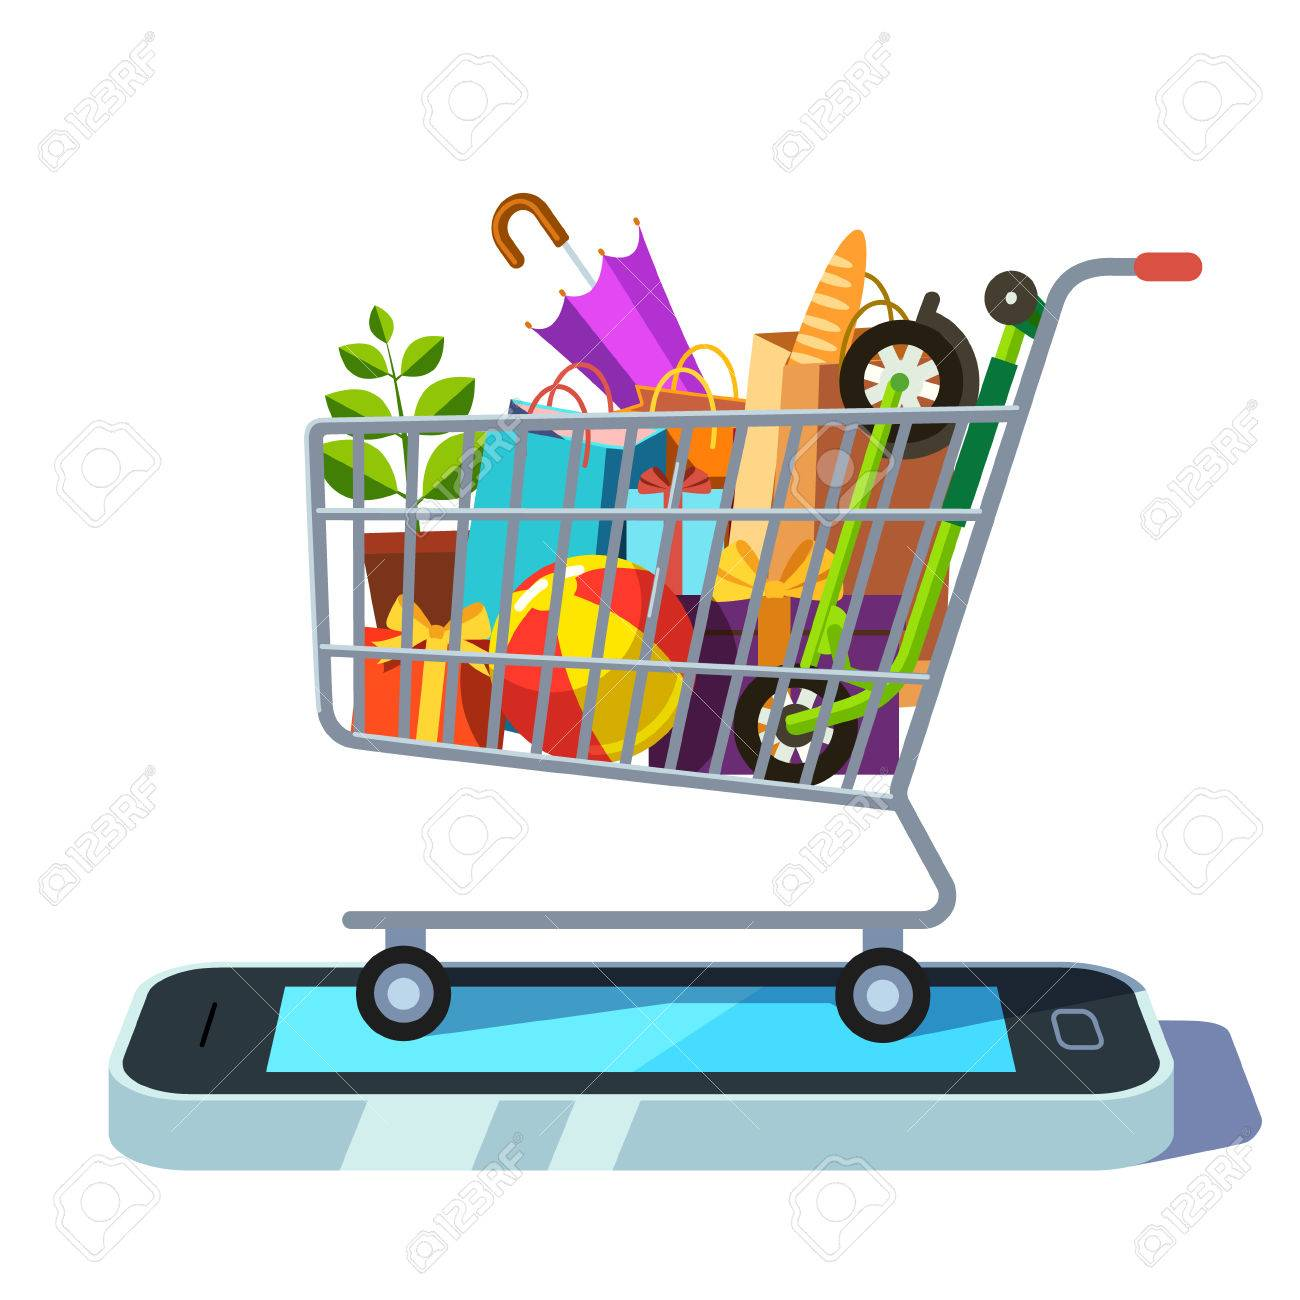 %craziya shopping cart